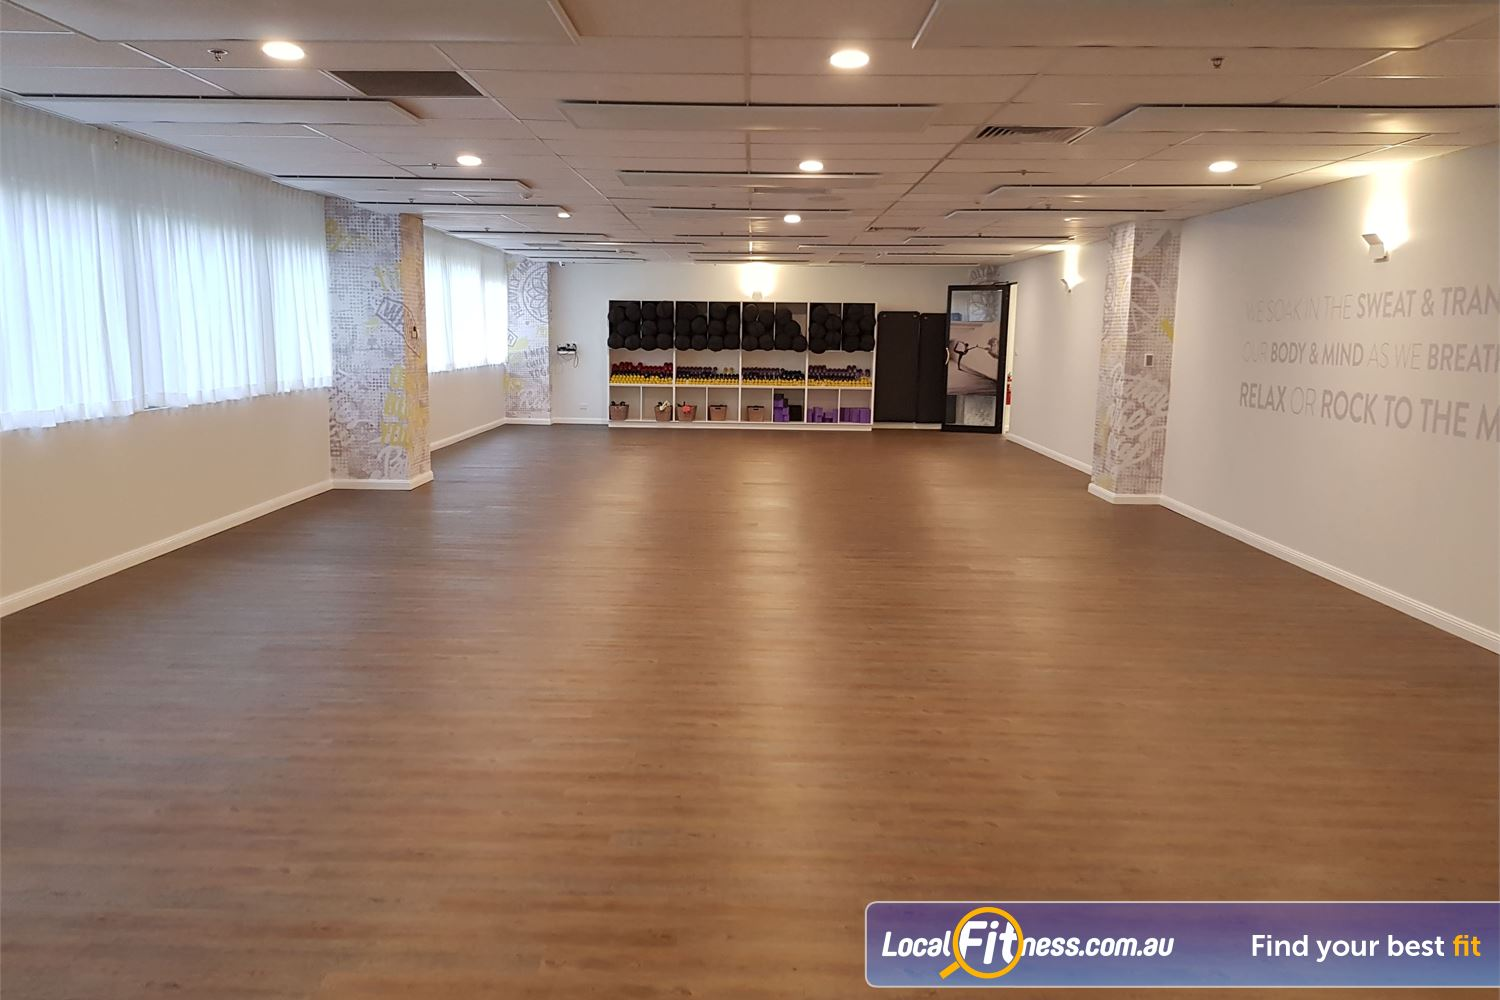 Fit n Fast Near Enfield Our classes inc. Yoga, Pilates, Barre and more.